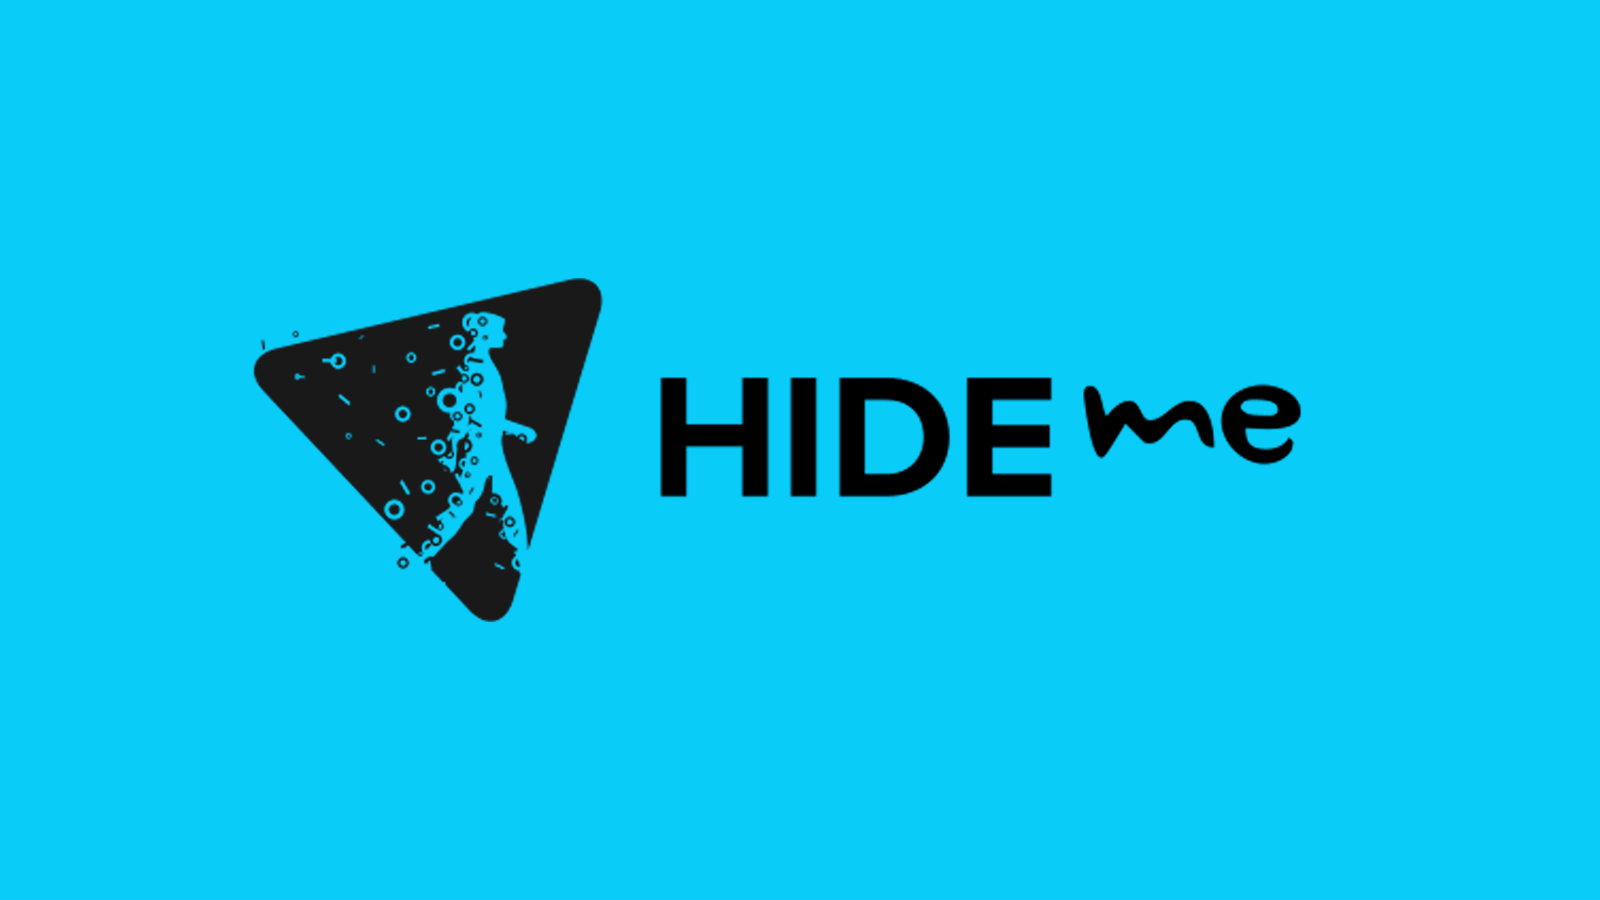 Hide.me company name and logo against blue background